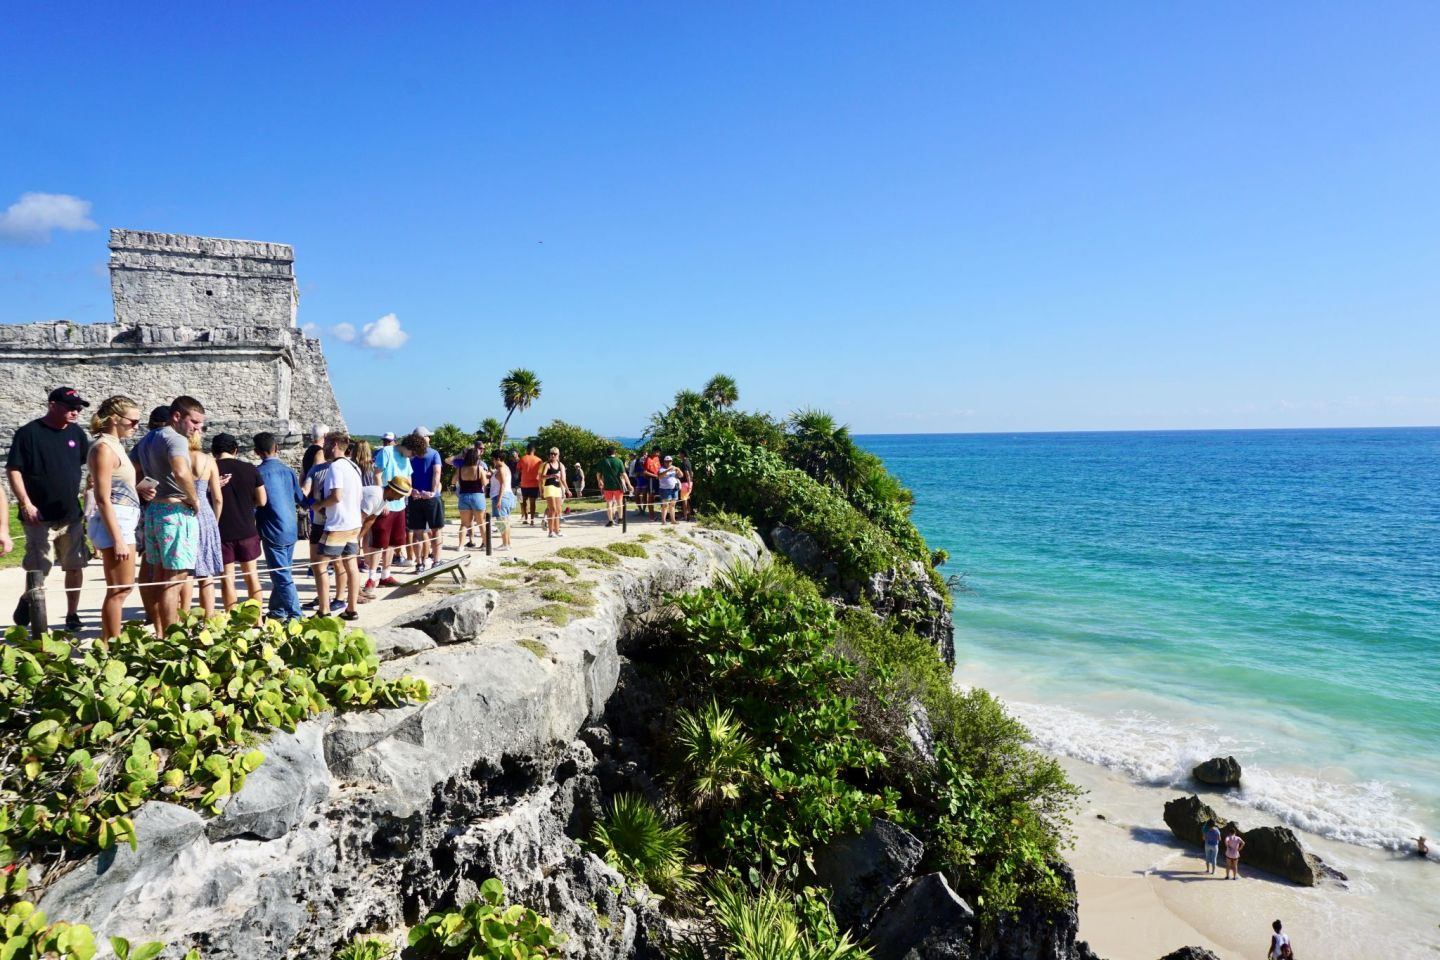 Tulum Ruins is crowded but worth the visit